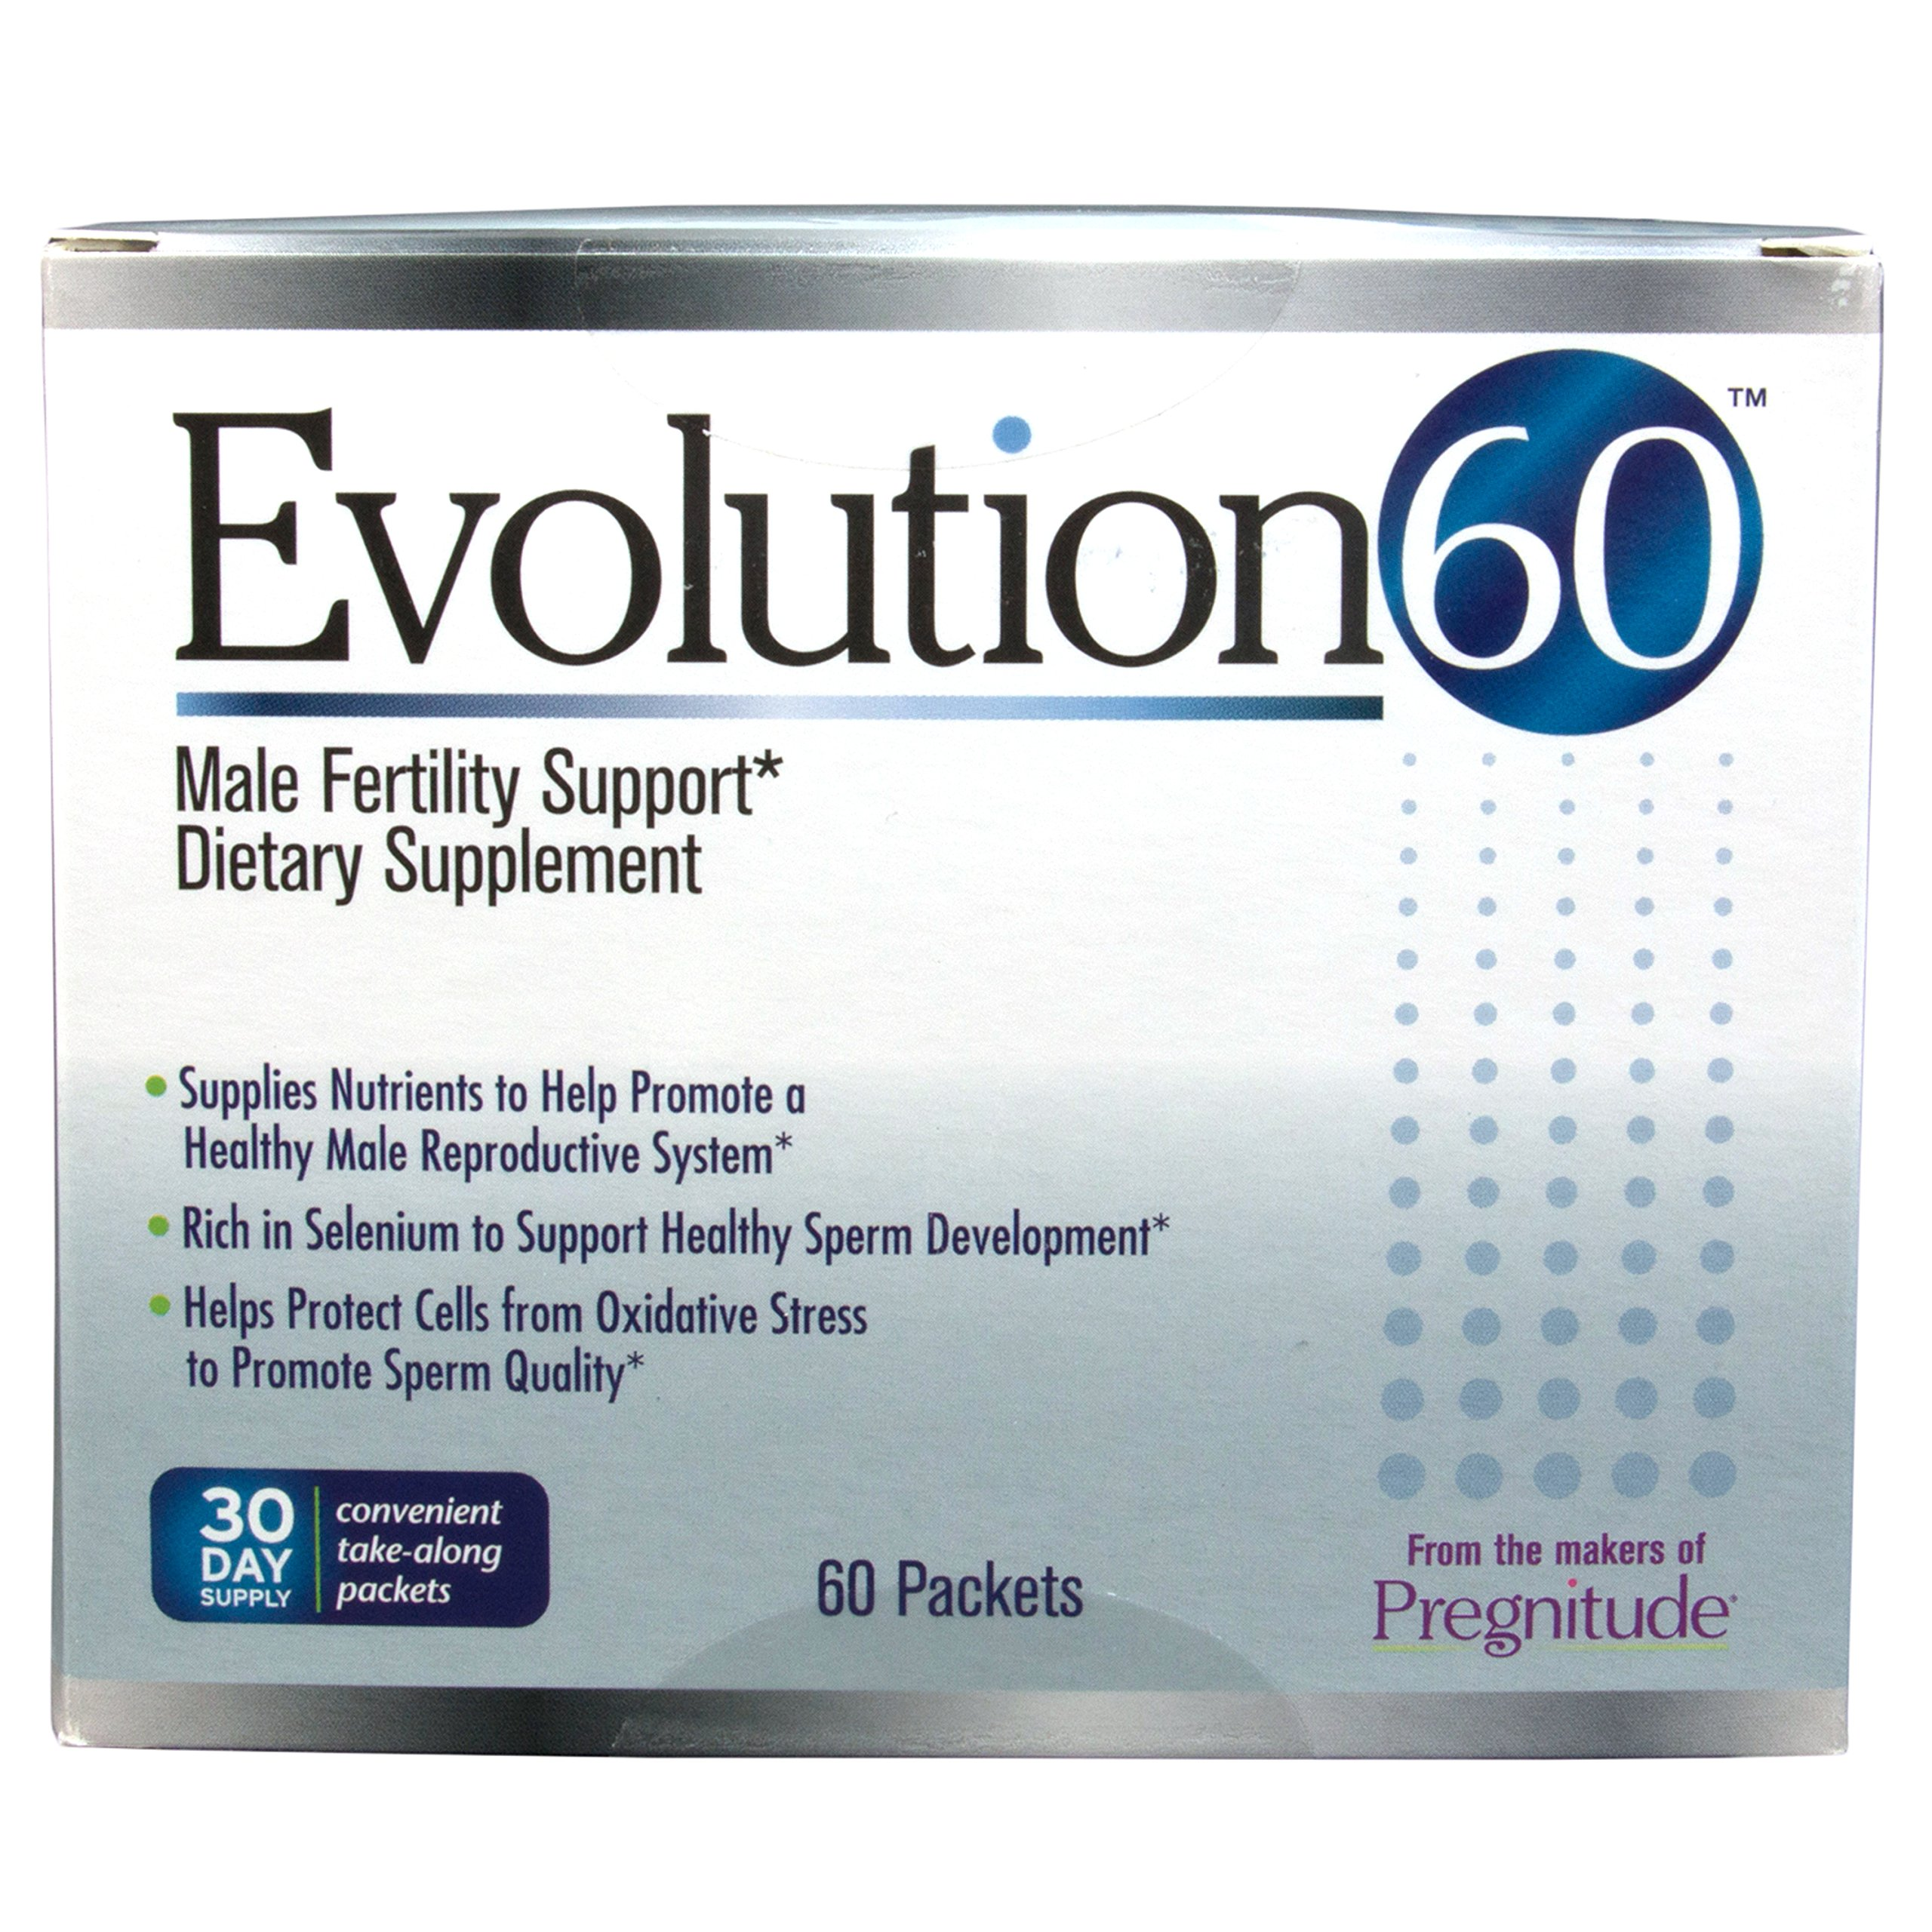 Evolution60 Male Fertility And Reproductive Supplement - 60 Support Packets